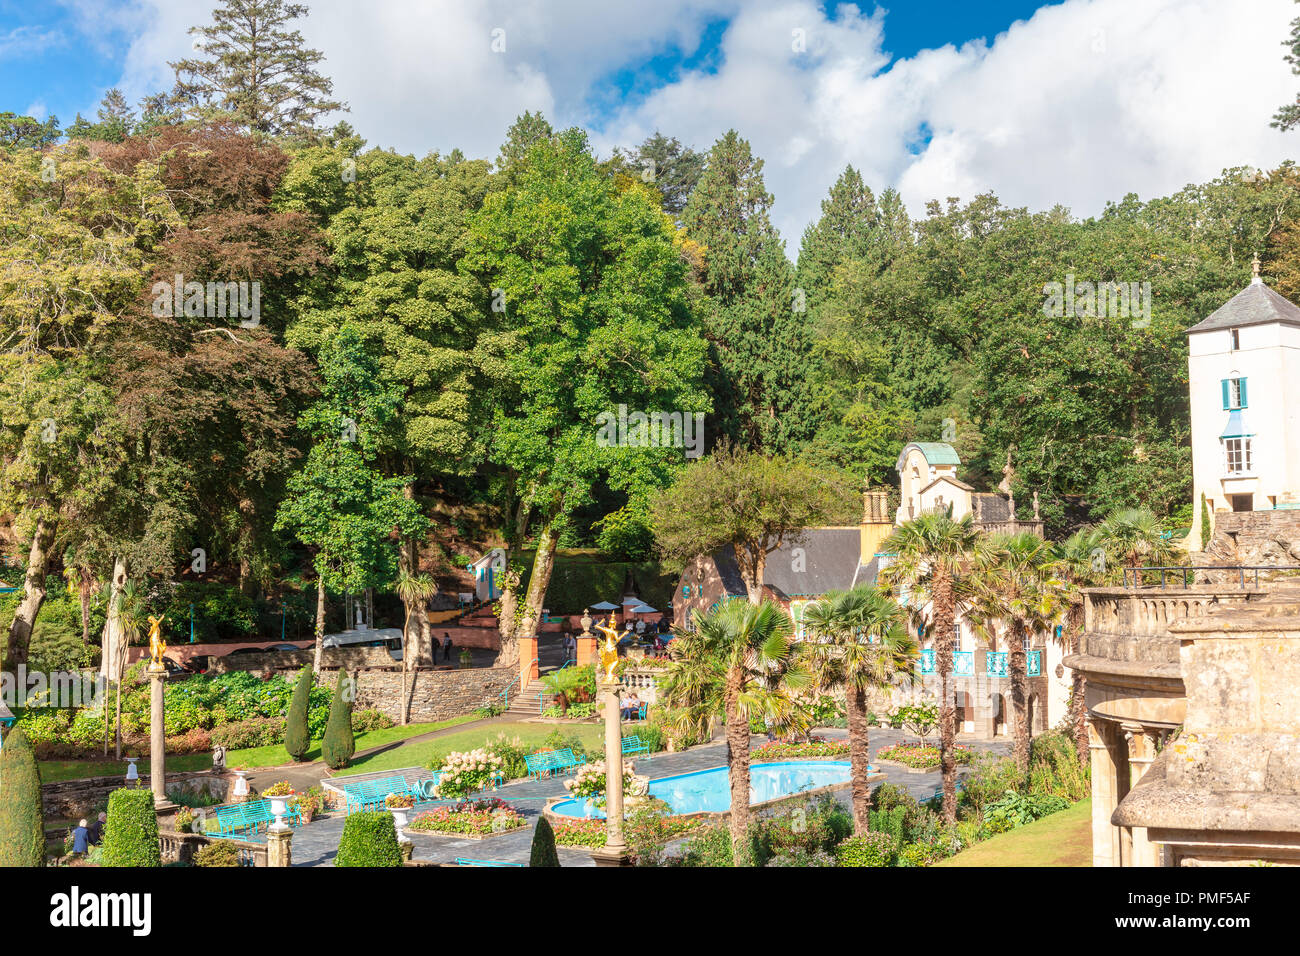 Popular tourist resort of Portmeirion, North Wales, UK, the Italianate village built by Clough Williams-Ellis. Stock Photo